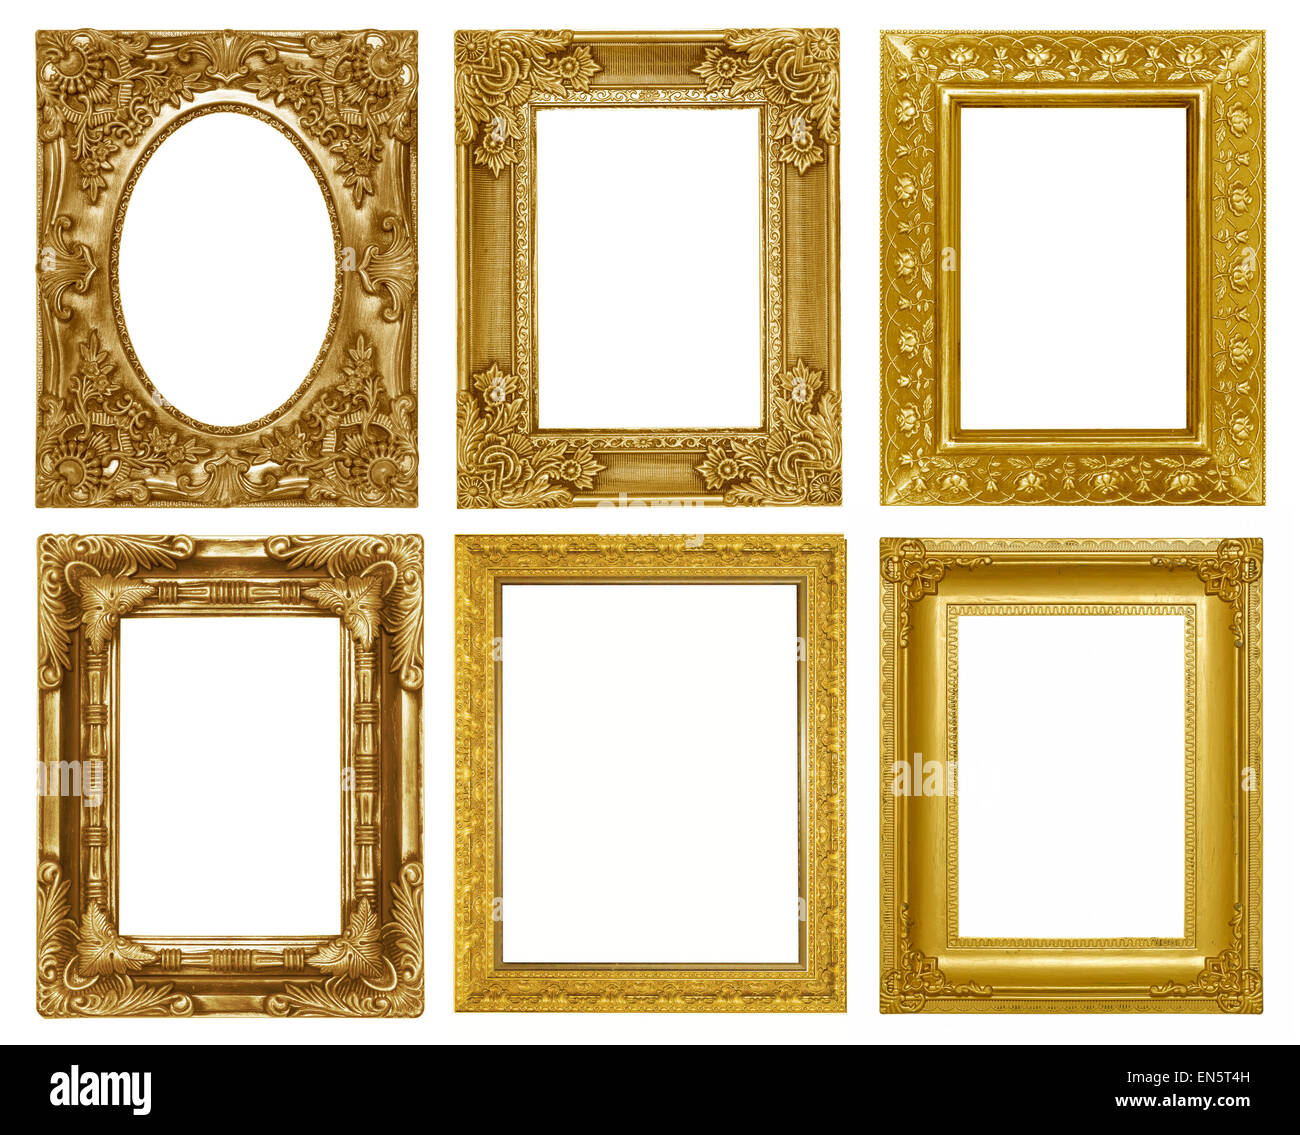 Black Gold Art Deco Frame Stock Photos Black Gold Art Deco Frame